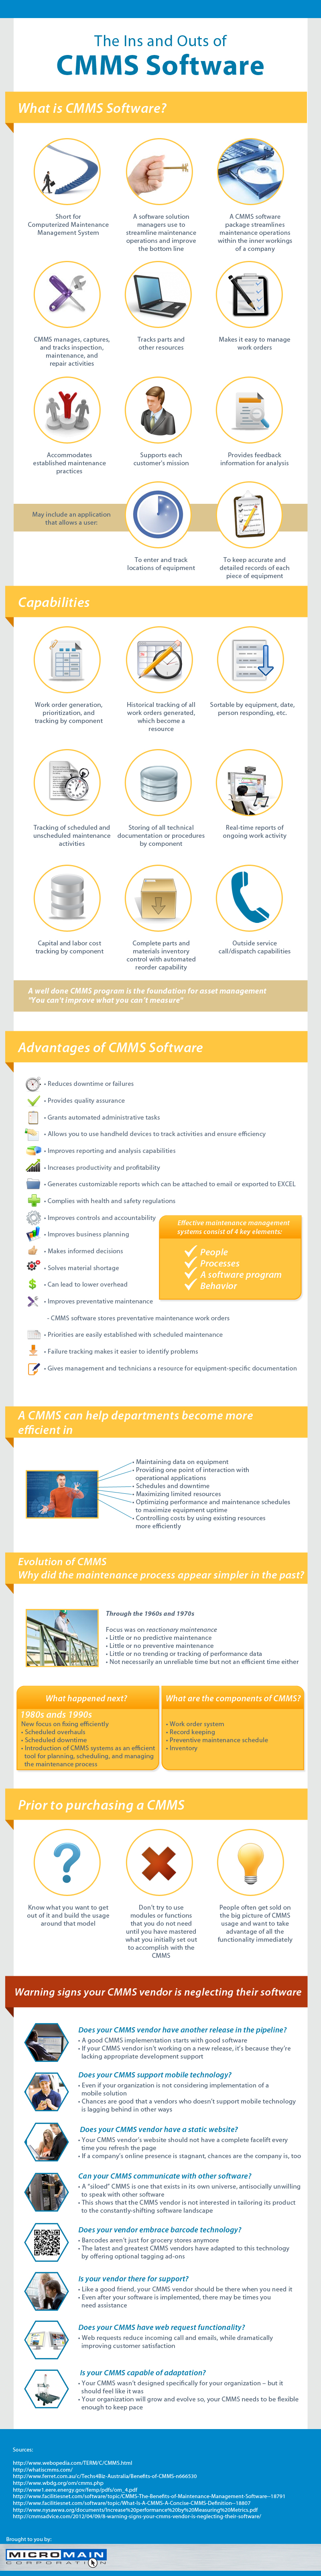 The Ins and Outs of CMMS Software Infographic | Visual ly